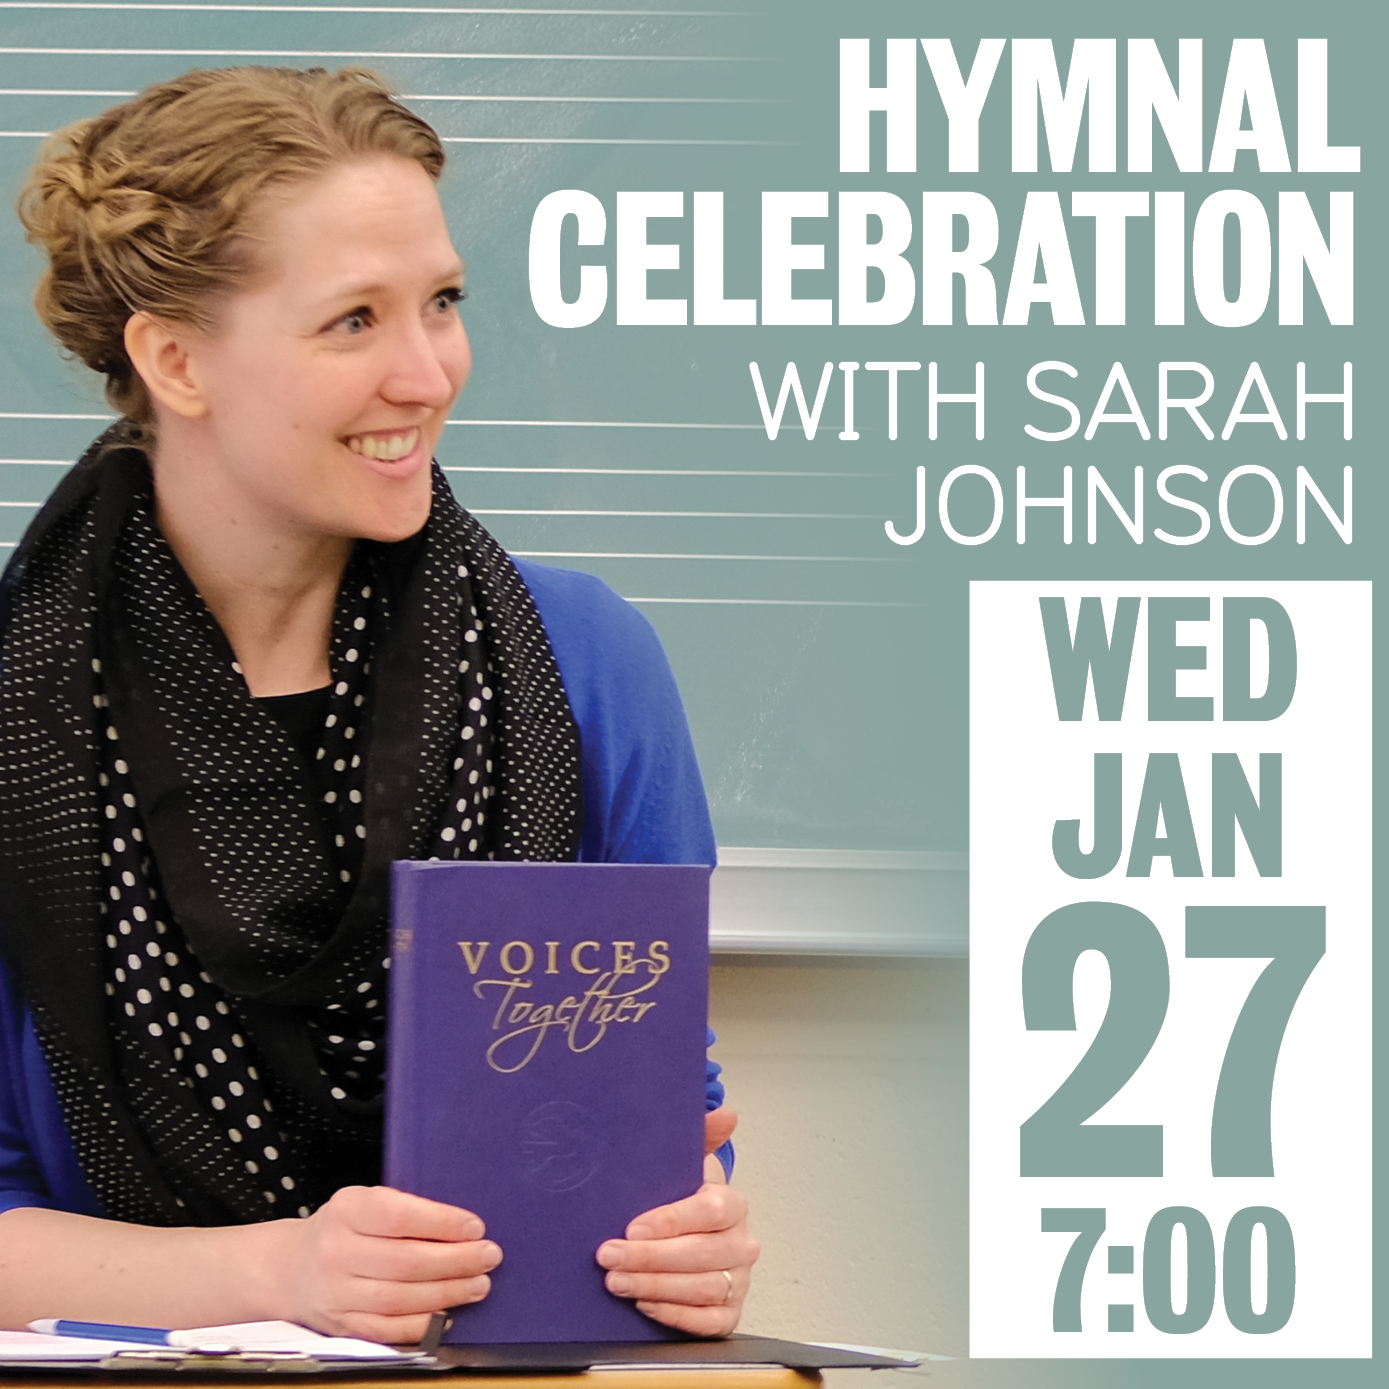 Hymnal Celebration with Sara Johnson